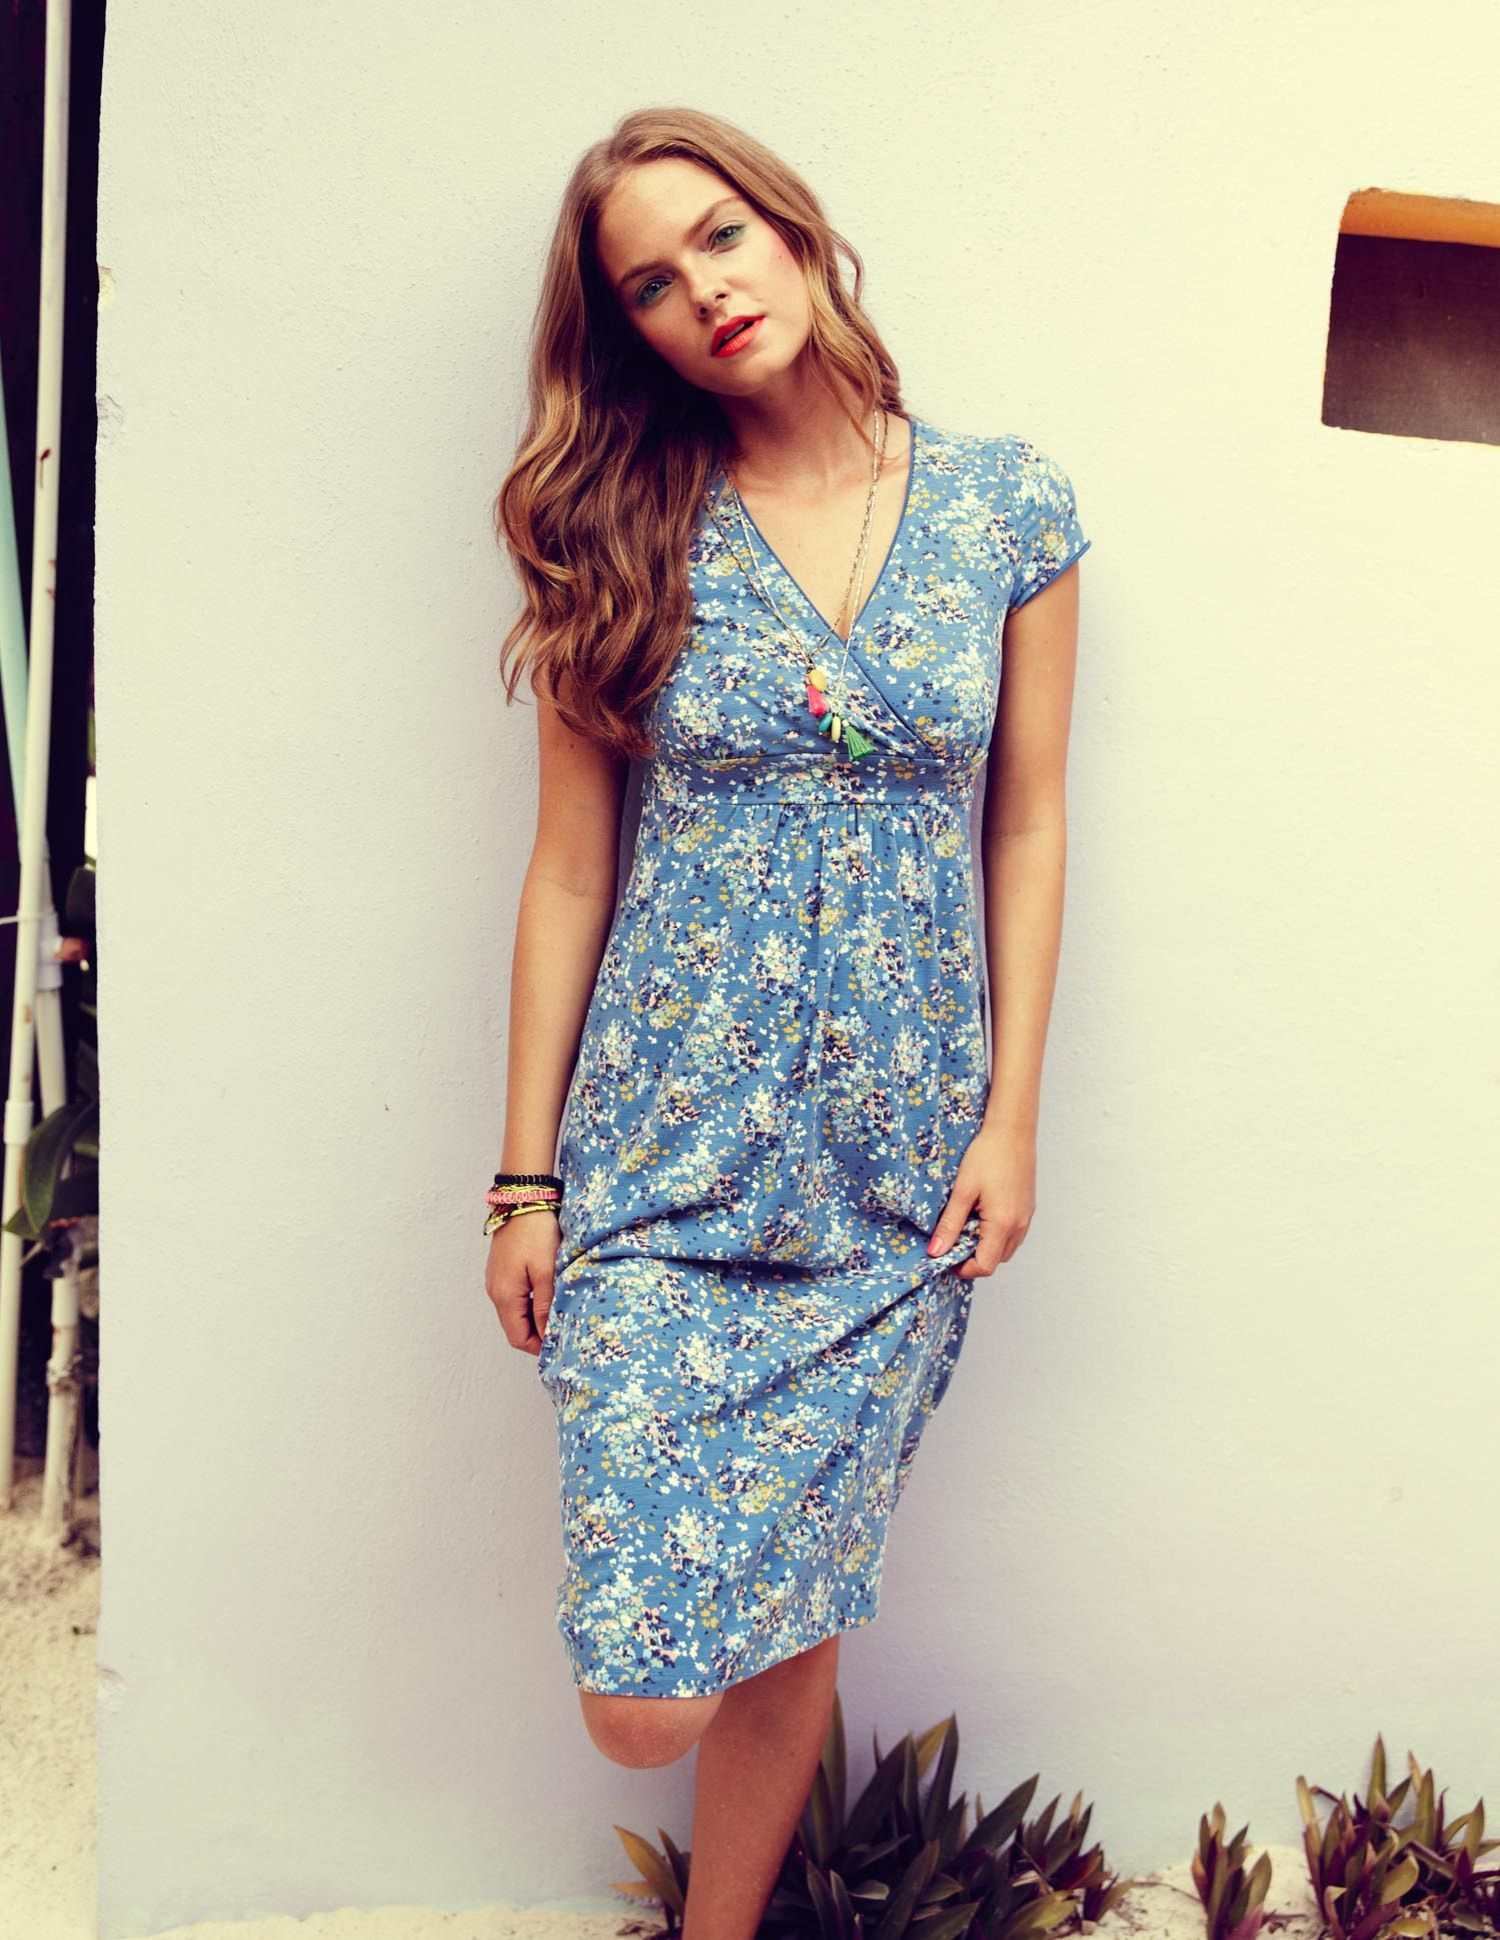 Casual Jersey Dress WH492 Knee Length Dresses at Boden ...